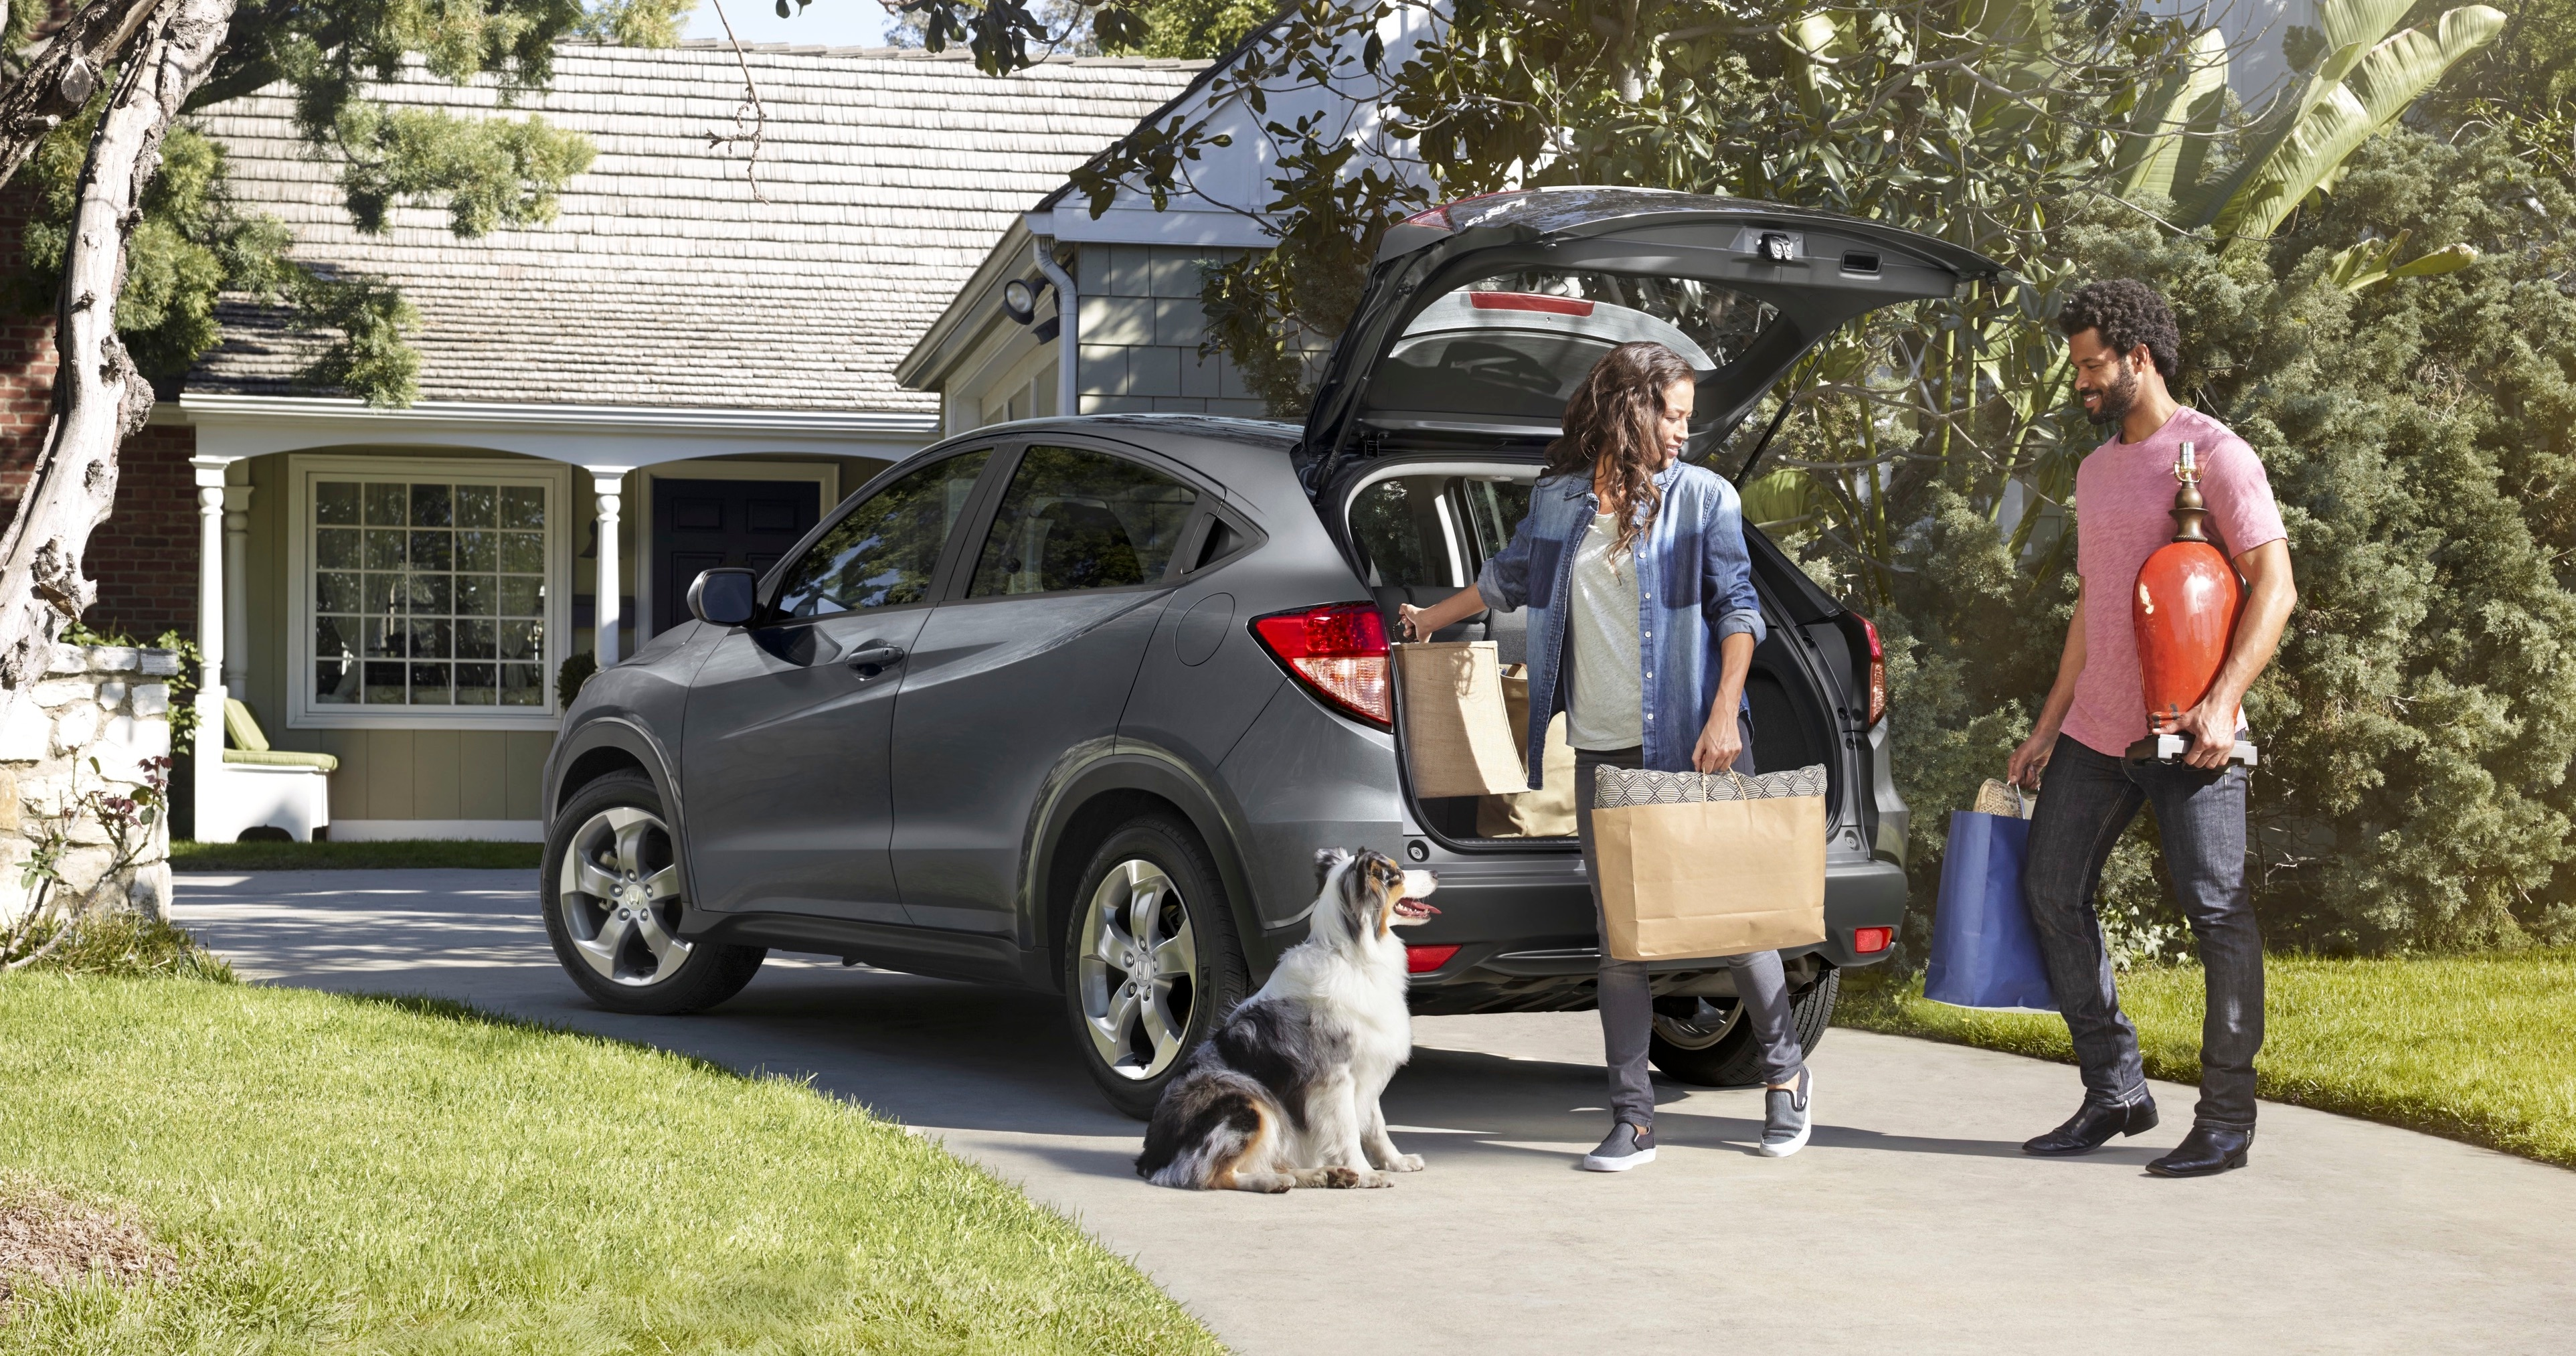 Charming Hereu0027s Something Worth Barking About: AutoFair Honda Is Your Dog Friendly  Dealership!